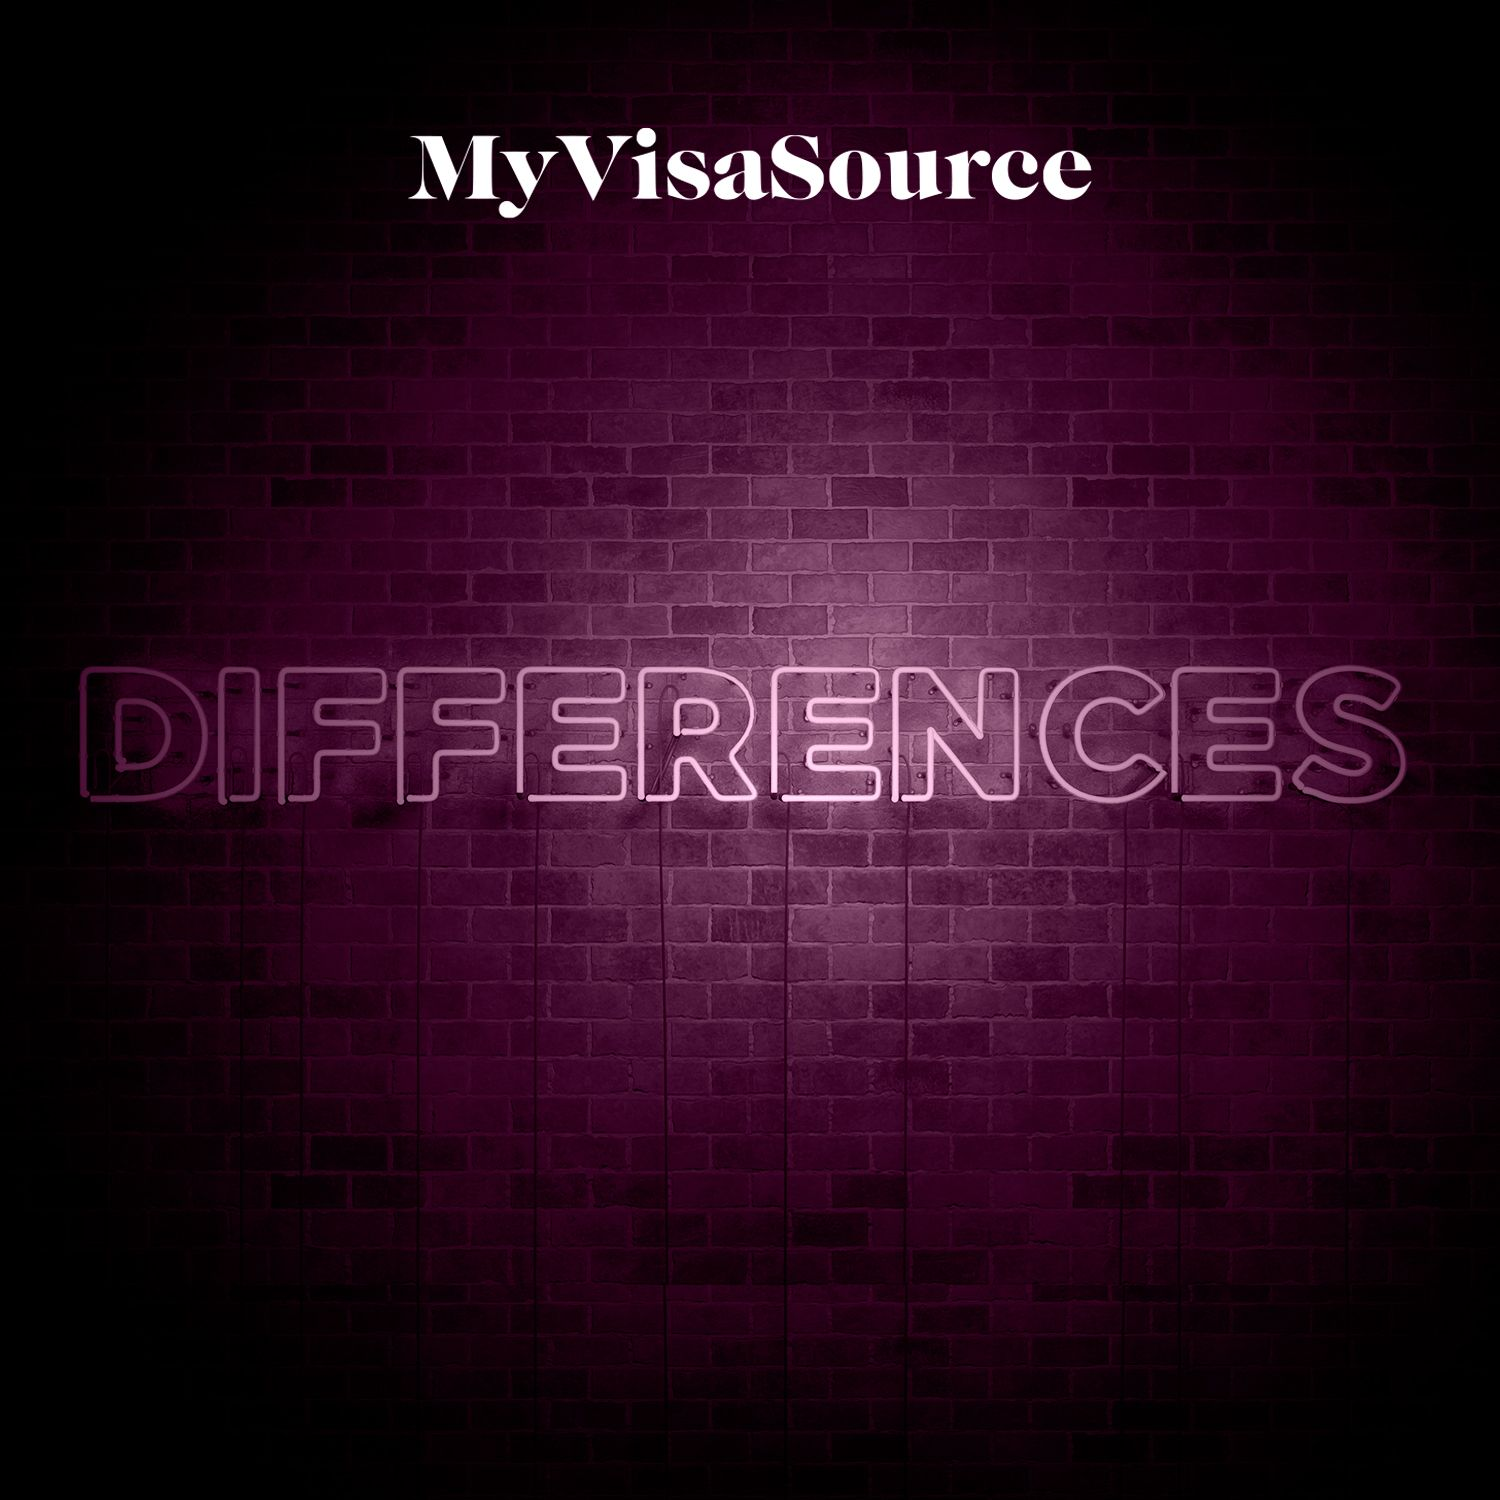 differences in neon lighting on a brick wall my visa source